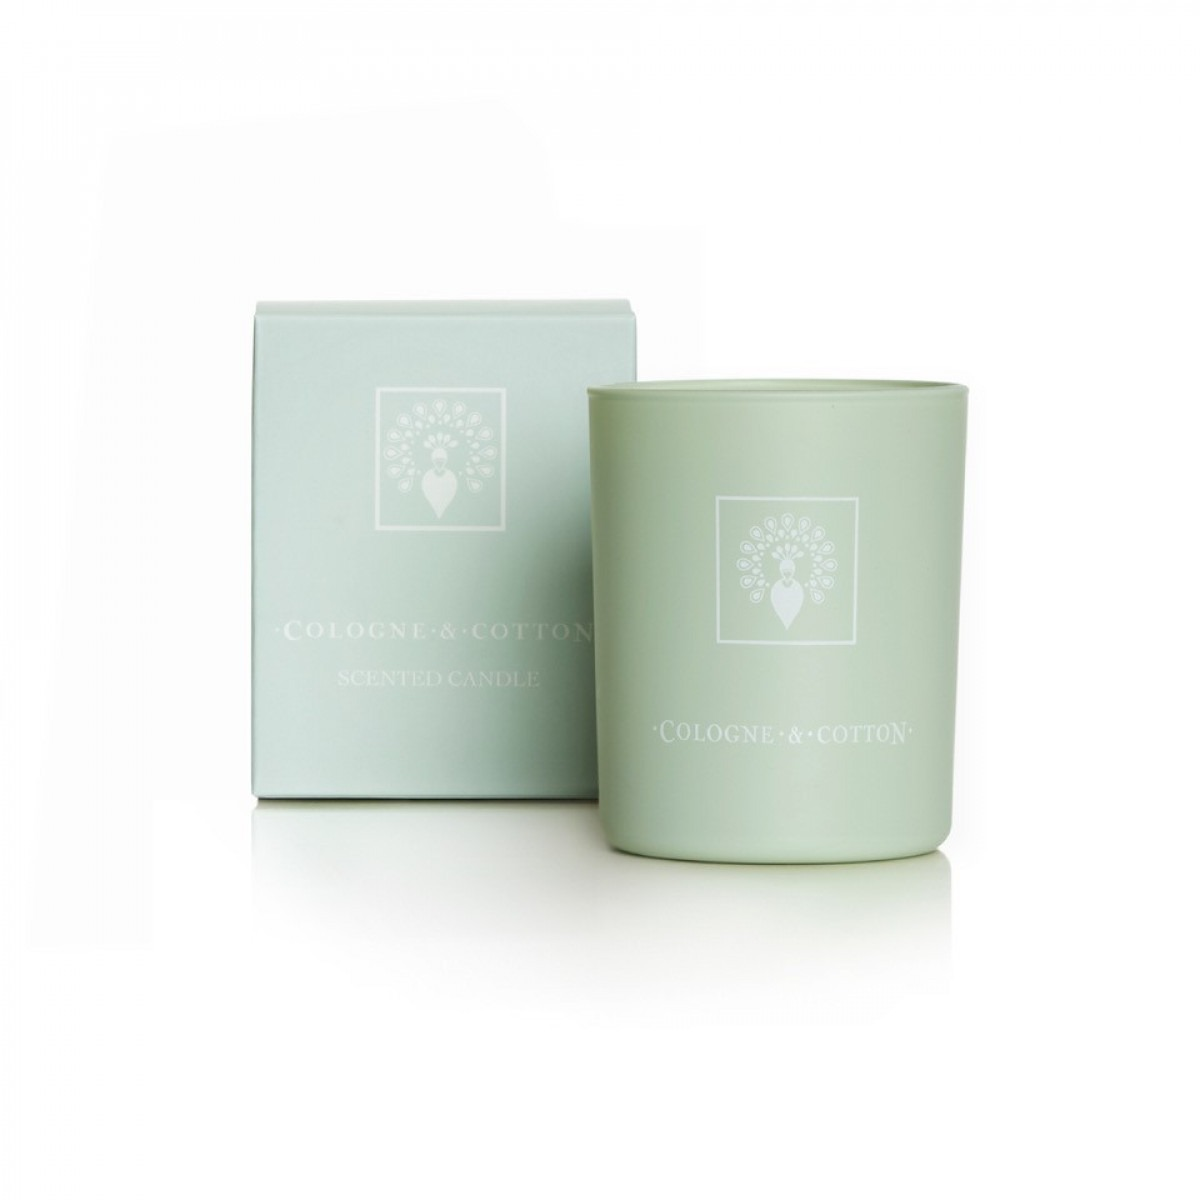 Cologne & Cotton Candle